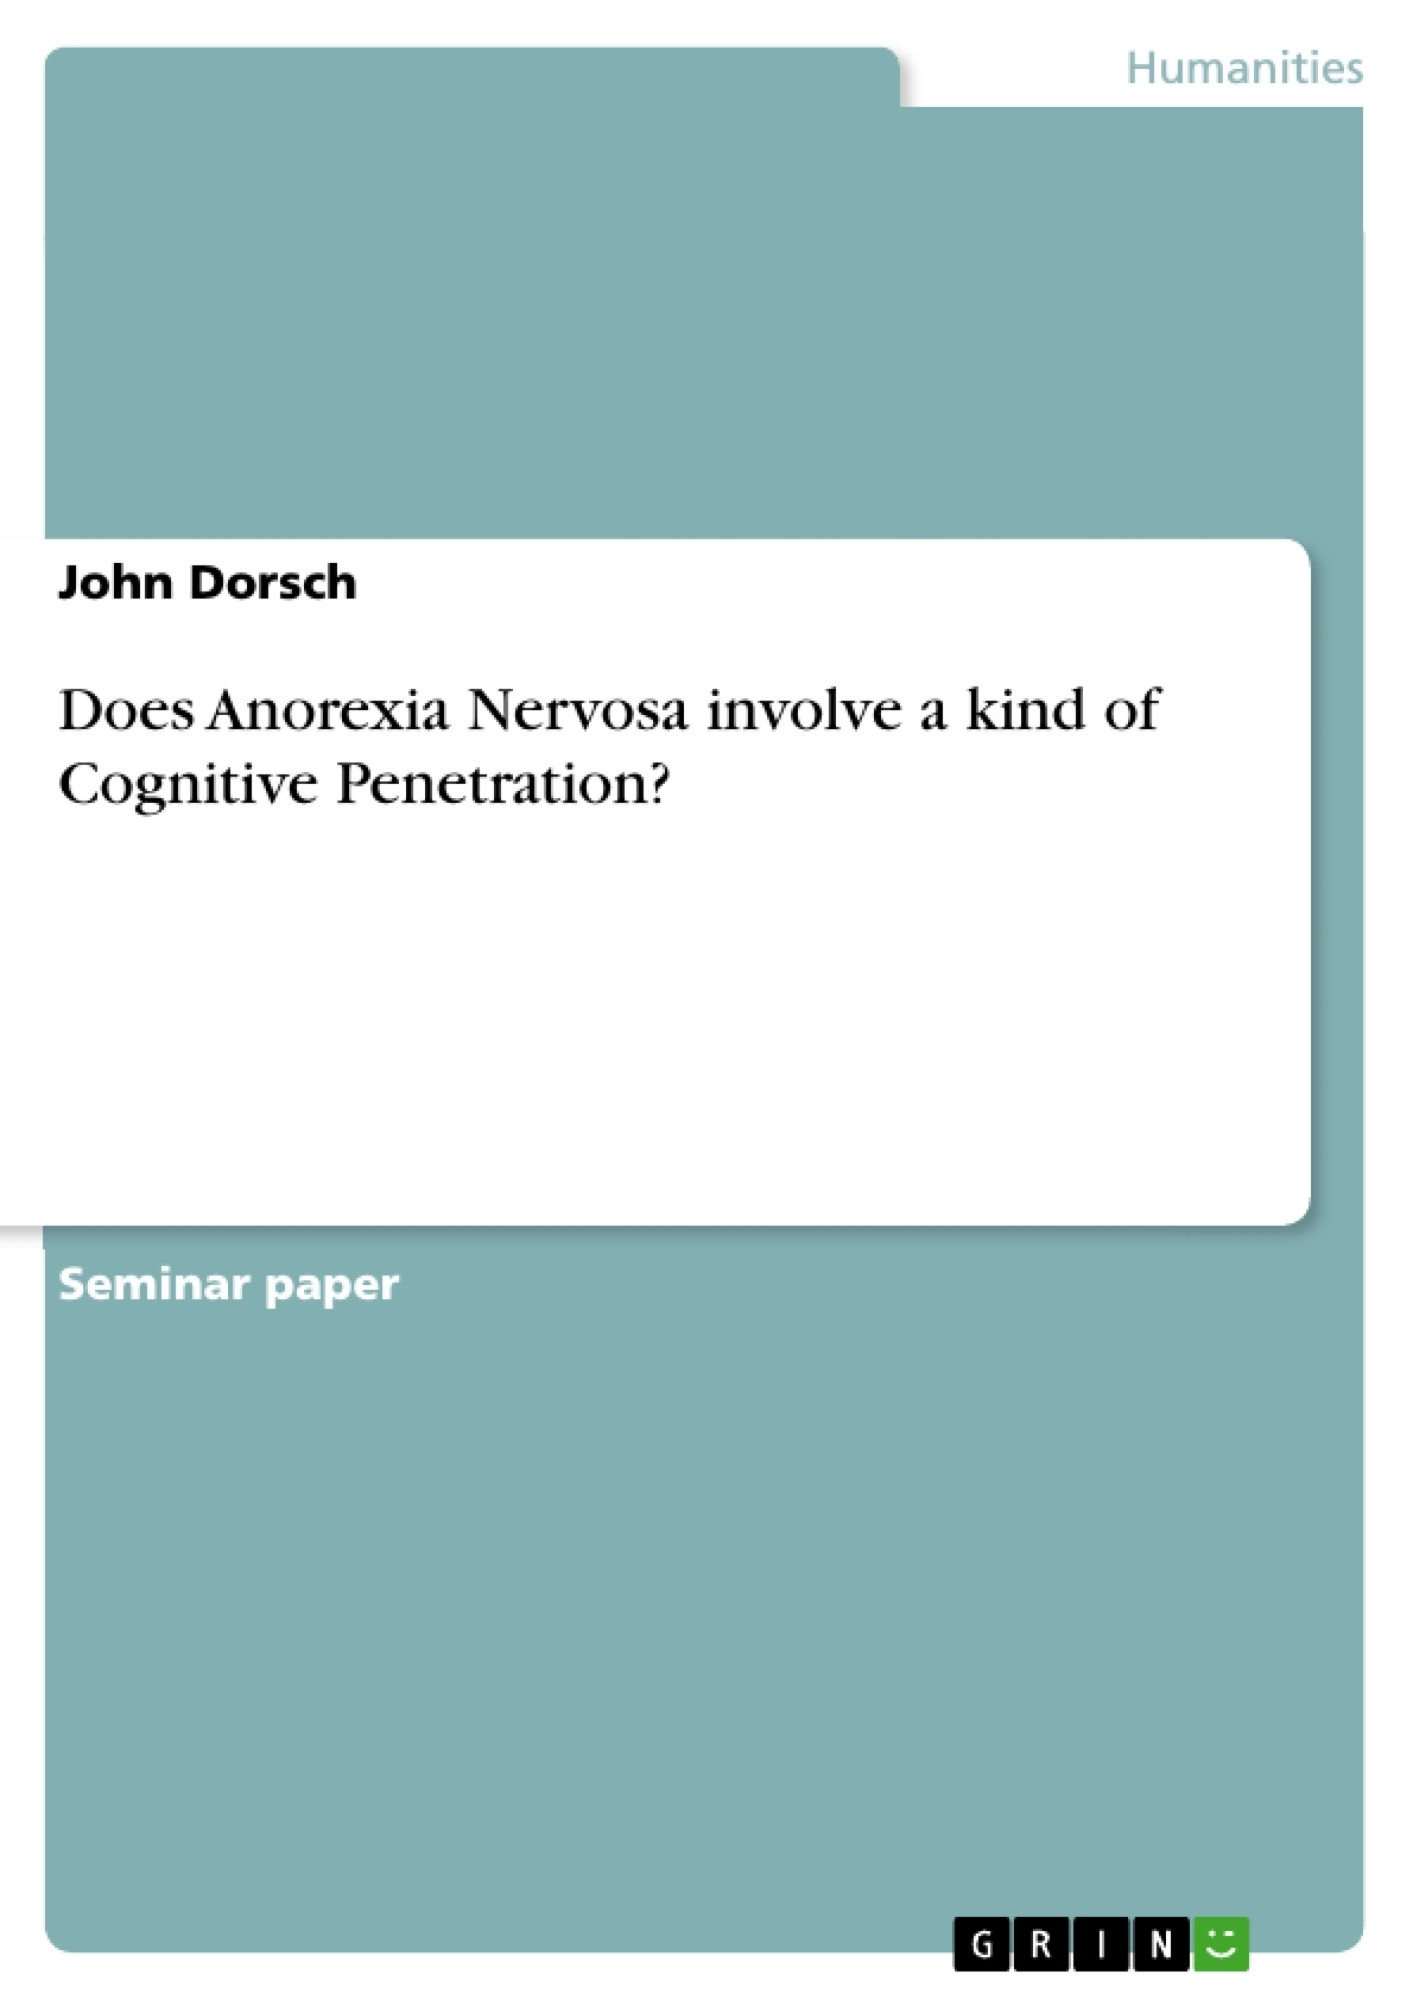 Title: Does Anorexia Nervosa involve a kind of Cognitive Penetration?